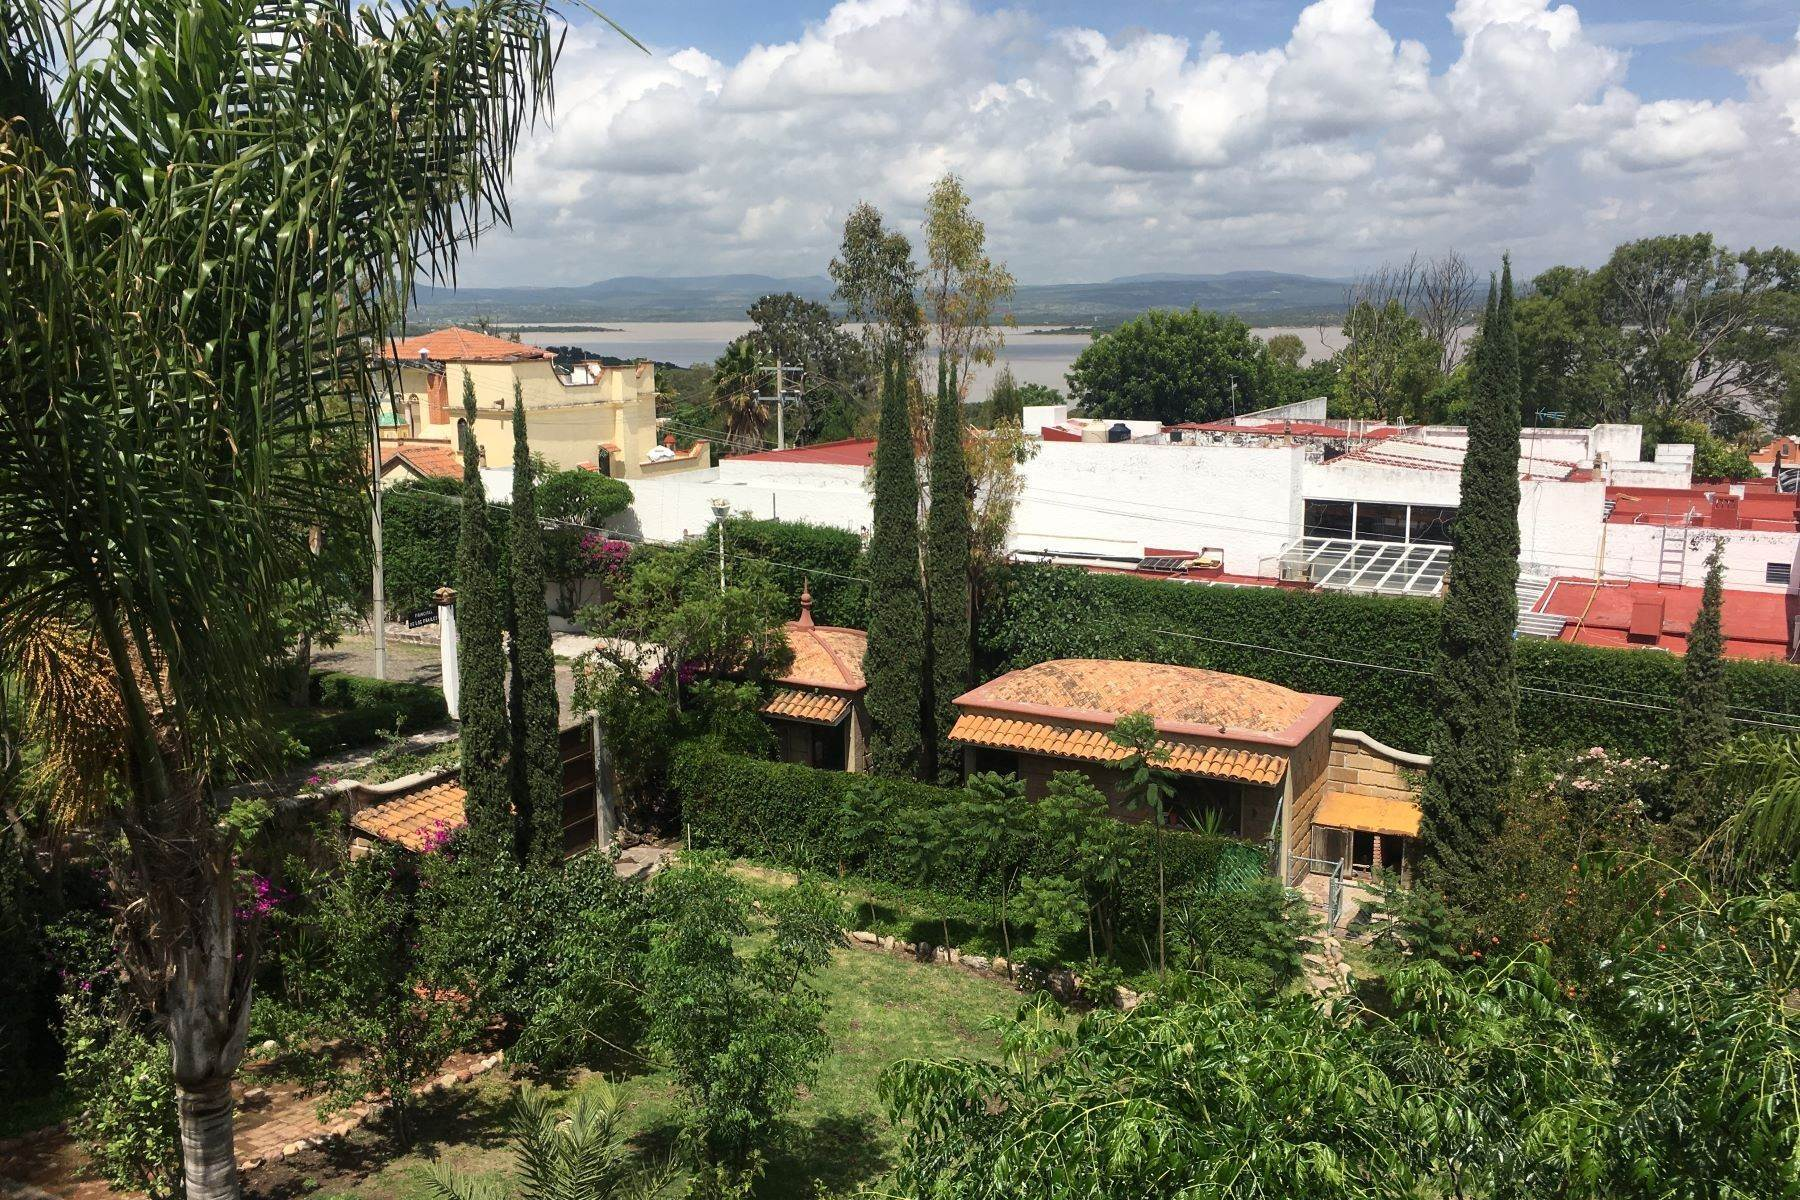 Land for Sale at Lot 1 Bovedas Los Frailes, San Miguel De Allende, Guanajuato Mexico